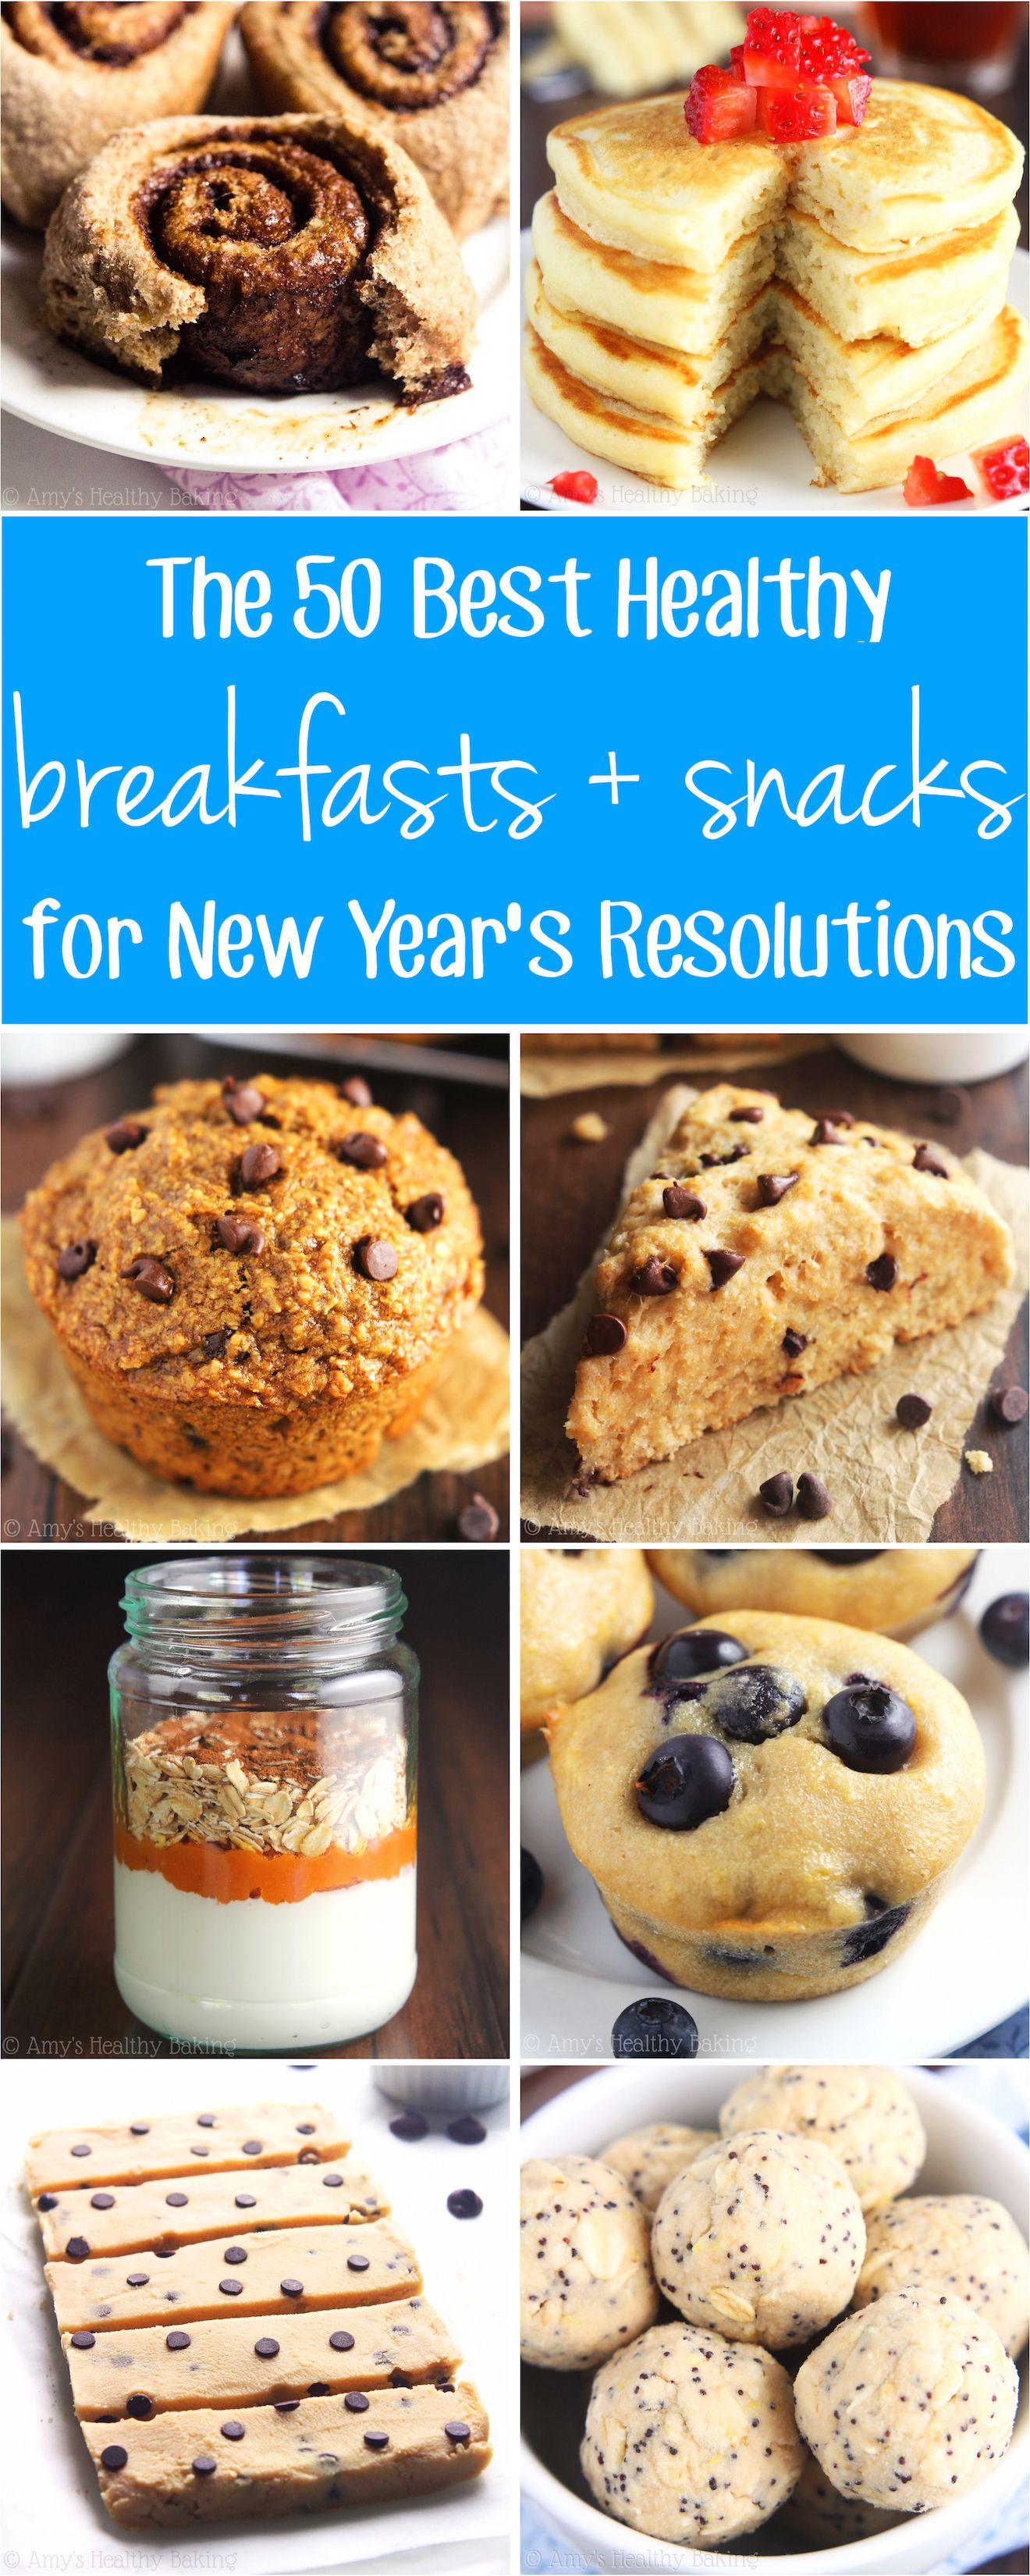 The 50 Best Snacks for Weight Loss (cont'd)